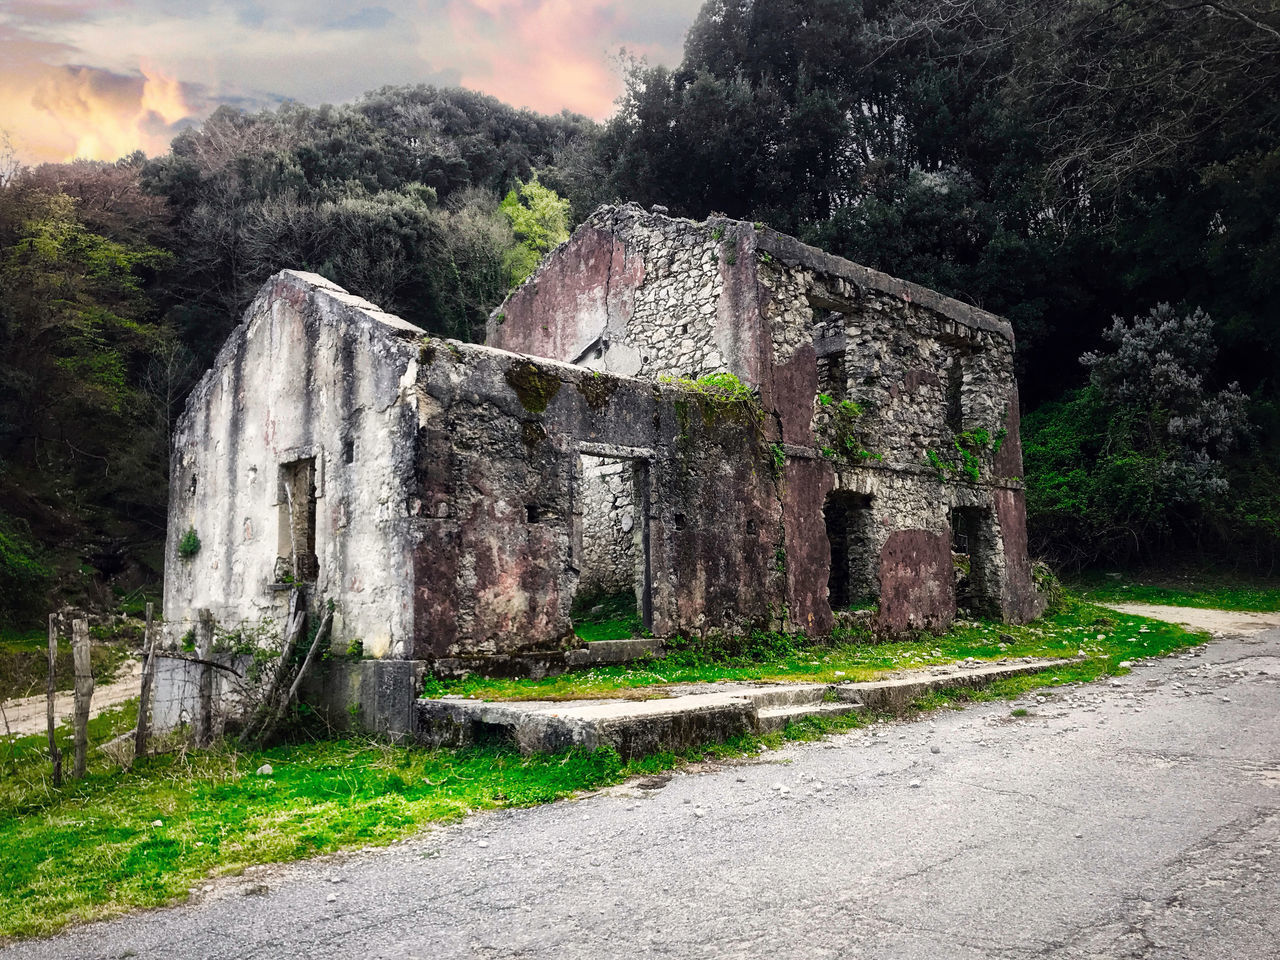 architecture, built structure, history, the past, plant, nature, old, no people, old ruin, building exterior, damaged, sky, day, abandoned, ancient, building, tree, outdoors, obsolete, weathered, ruined, archaeology, ancient civilization